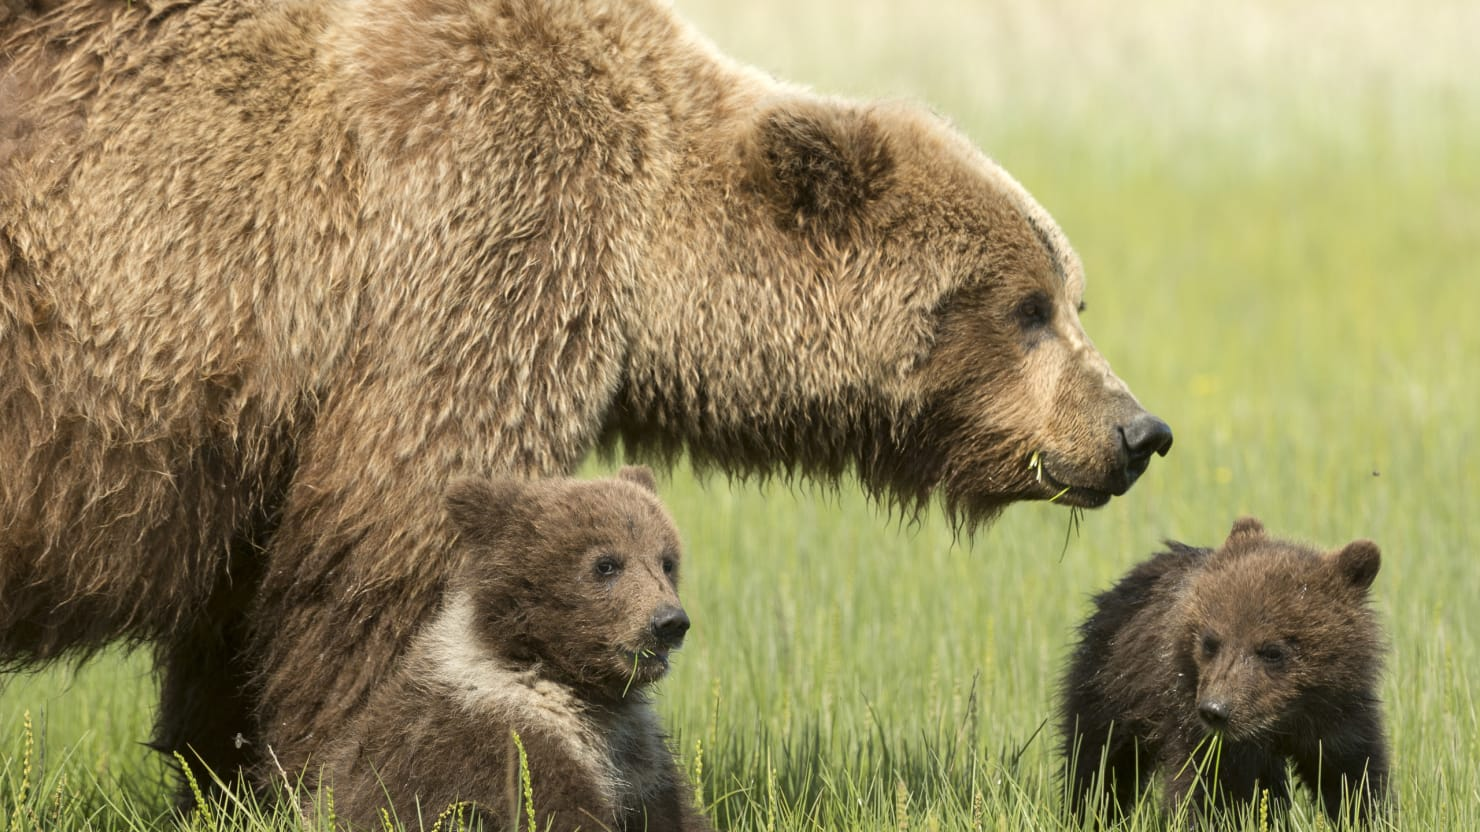 What it takes to kill a grizzly bear daisy gilardinigetty publicscrutiny Choice Image